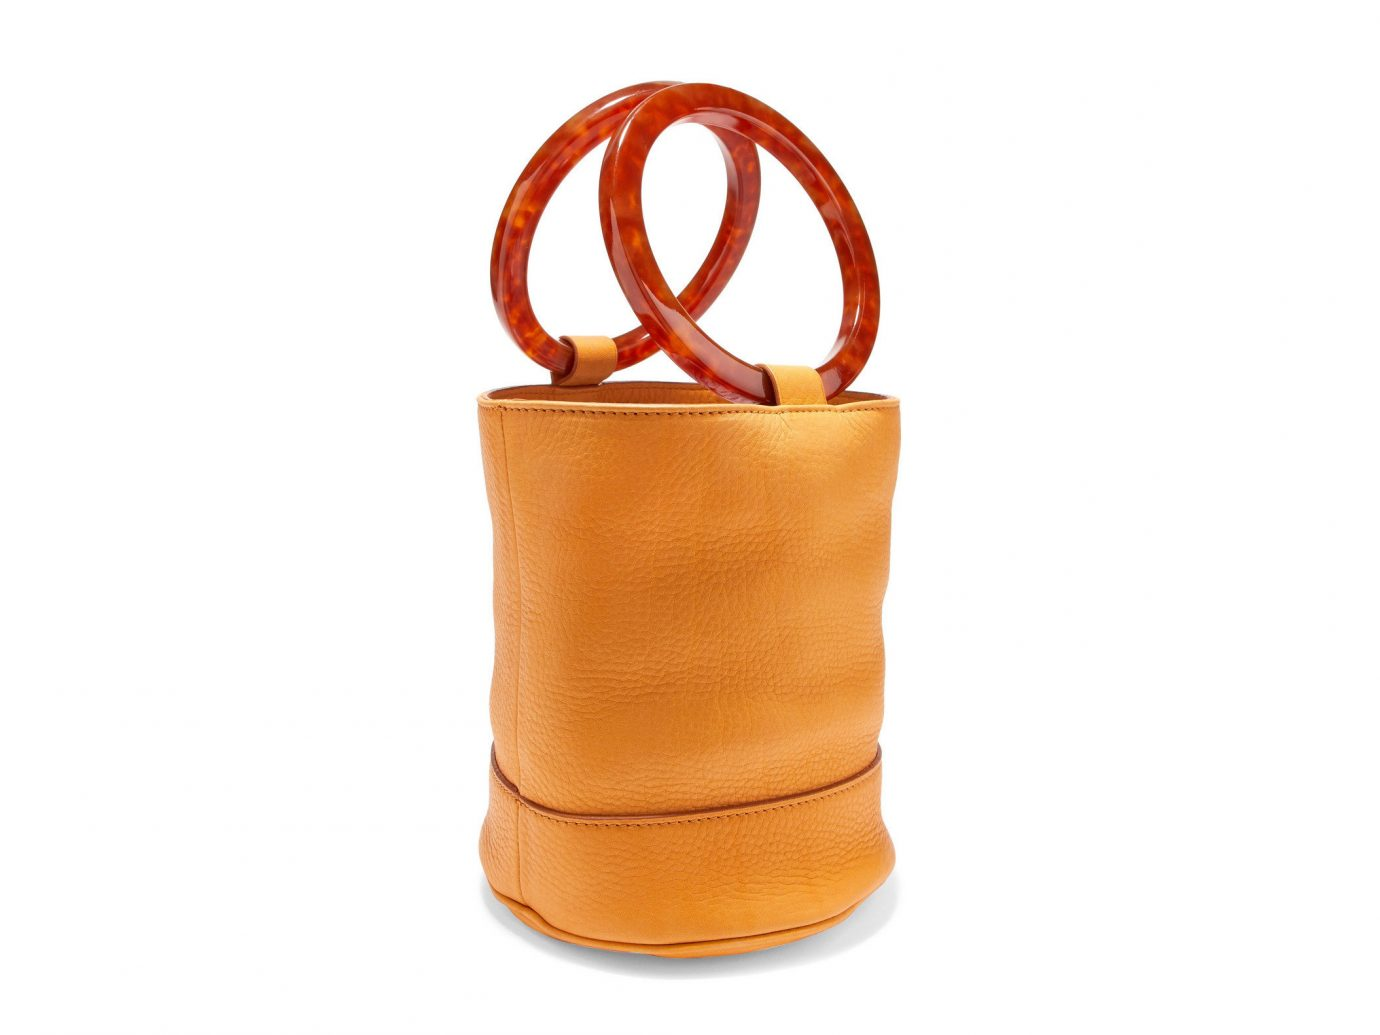 Spring Travel Style + Design Summer Travel Travel Lifestyle Travel Shop orange product product design leather